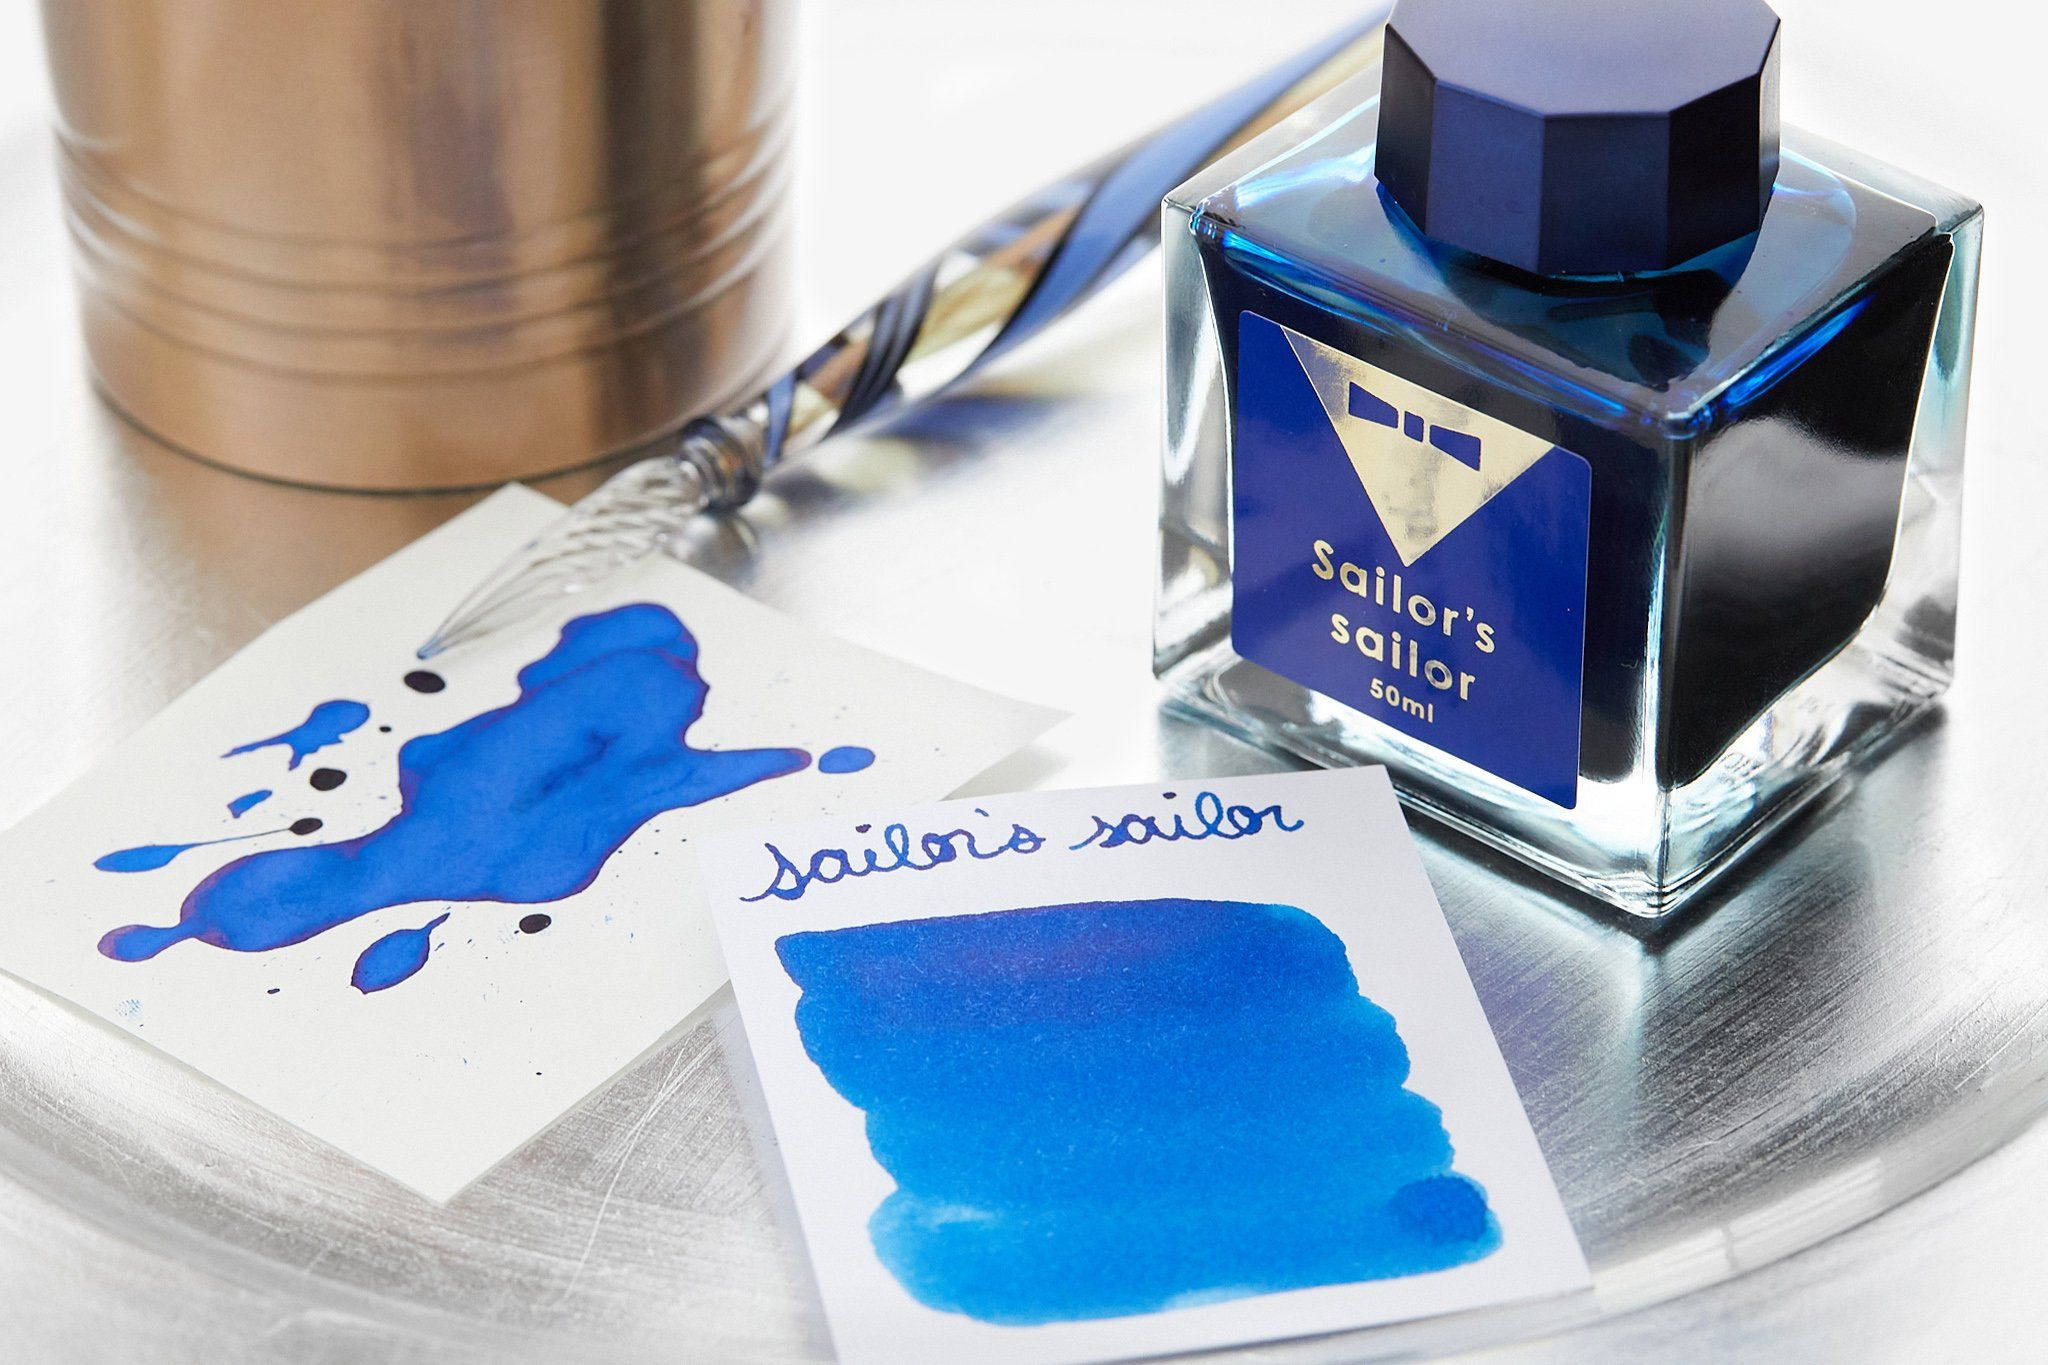 50ml square glass bottle of Sailor's sailor special edition Ocean Blue fountain pen ink. It is set in a special box along with an anniversary card and ink leaflet. For the past 15 years, Sailor has been actively holding Ink Studio in-shop ink blending events all throughout Japan. These sought after events have always been a success with Japanese consumers lining up to have custom ink colors blended by their famed Sailor ink blender Osamu Ishimaru. At the event, the blender wears a barman's unifo